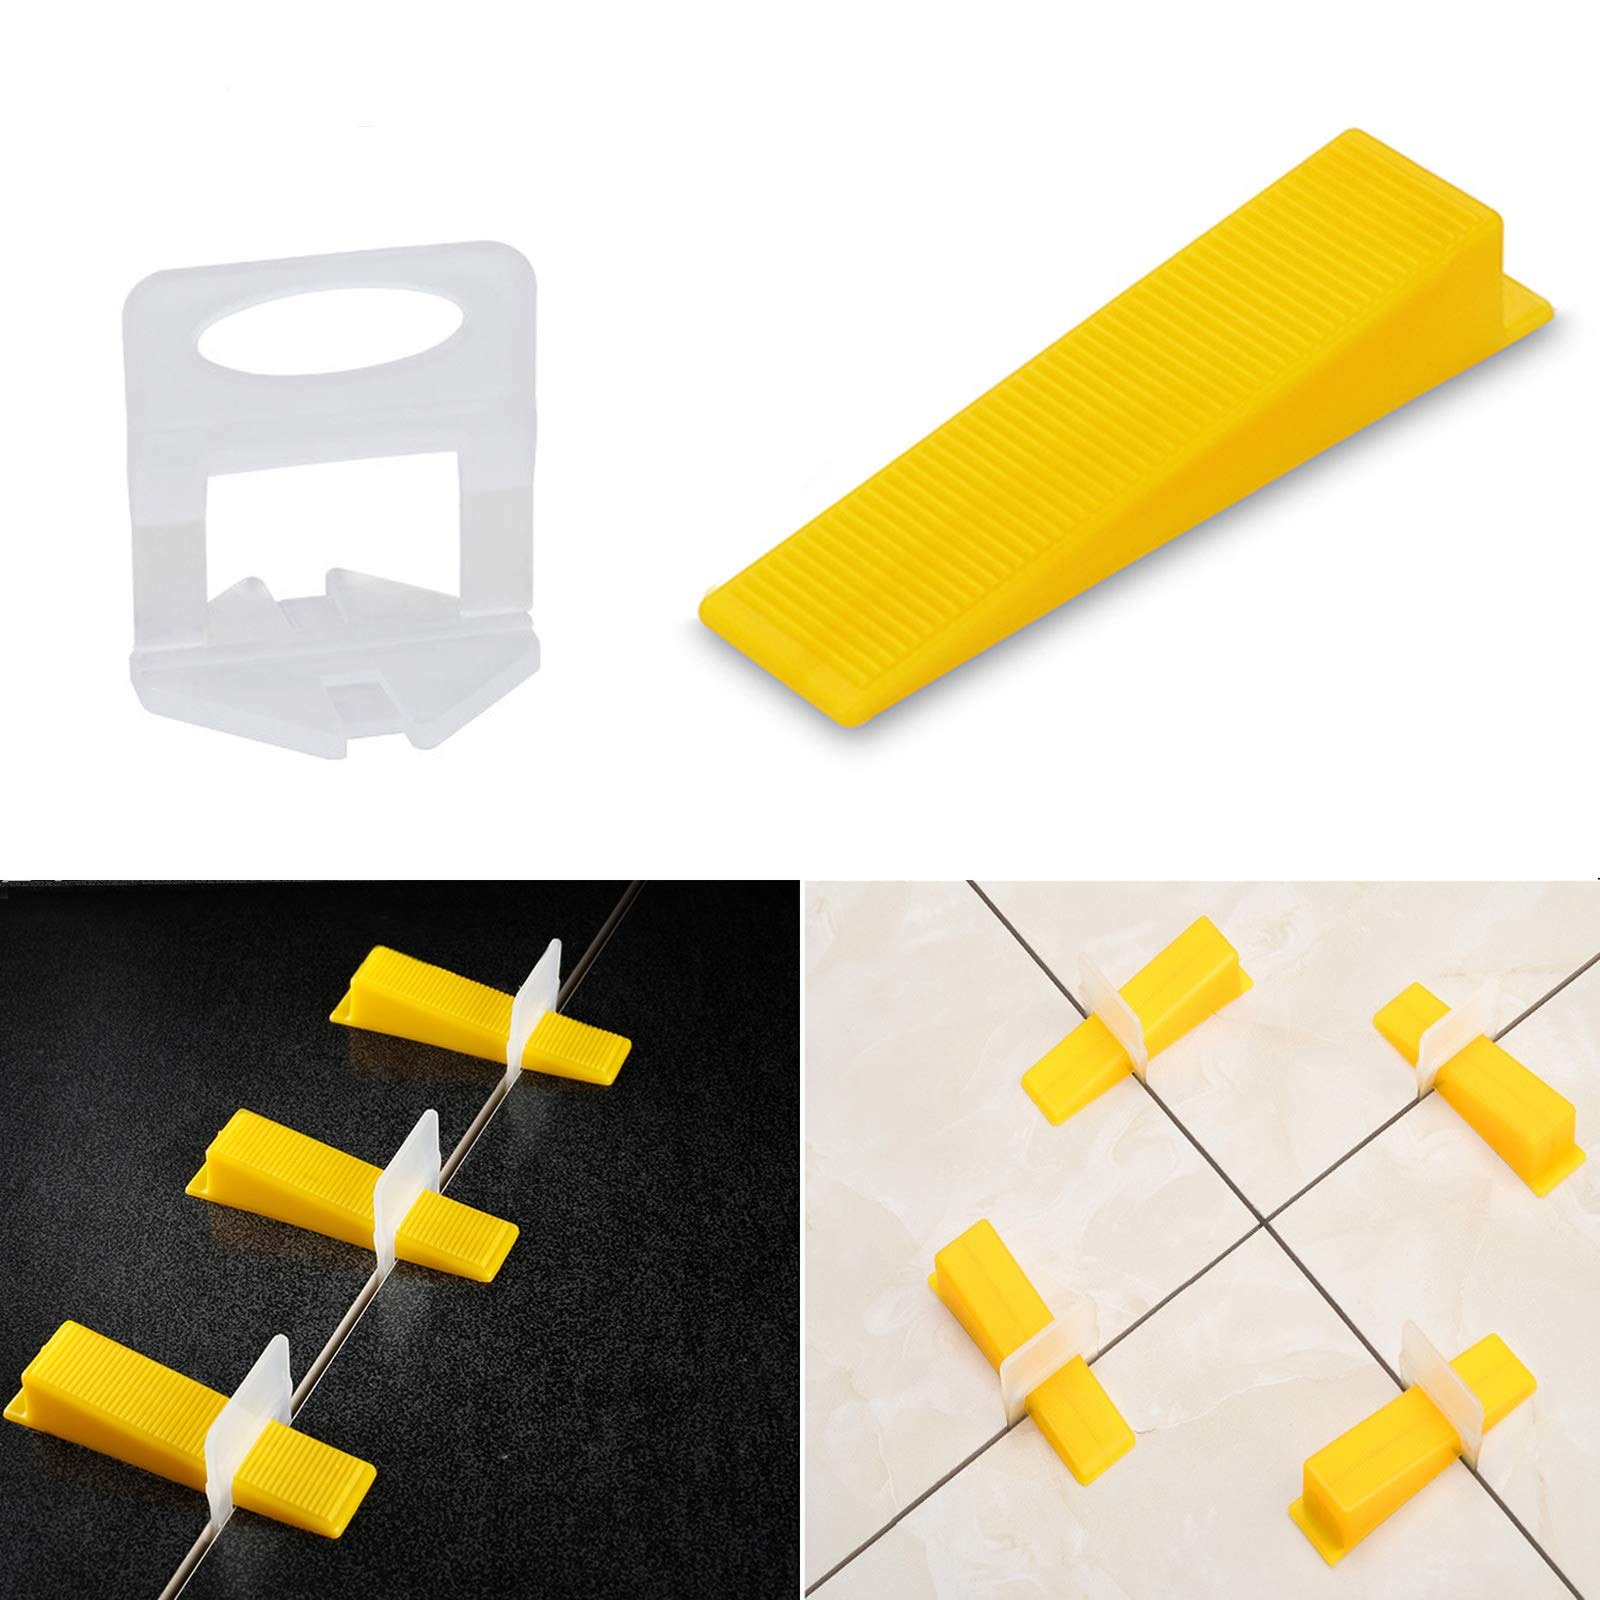 Tile Leveling System Tiles Leveler Spacers Lippage Free Tile And Stone Installation For Pro And Diy 300 Piece Leveling Spacer Clips Plus 100 Piece Reusable Wedges 1 16 Inch Amazon Com